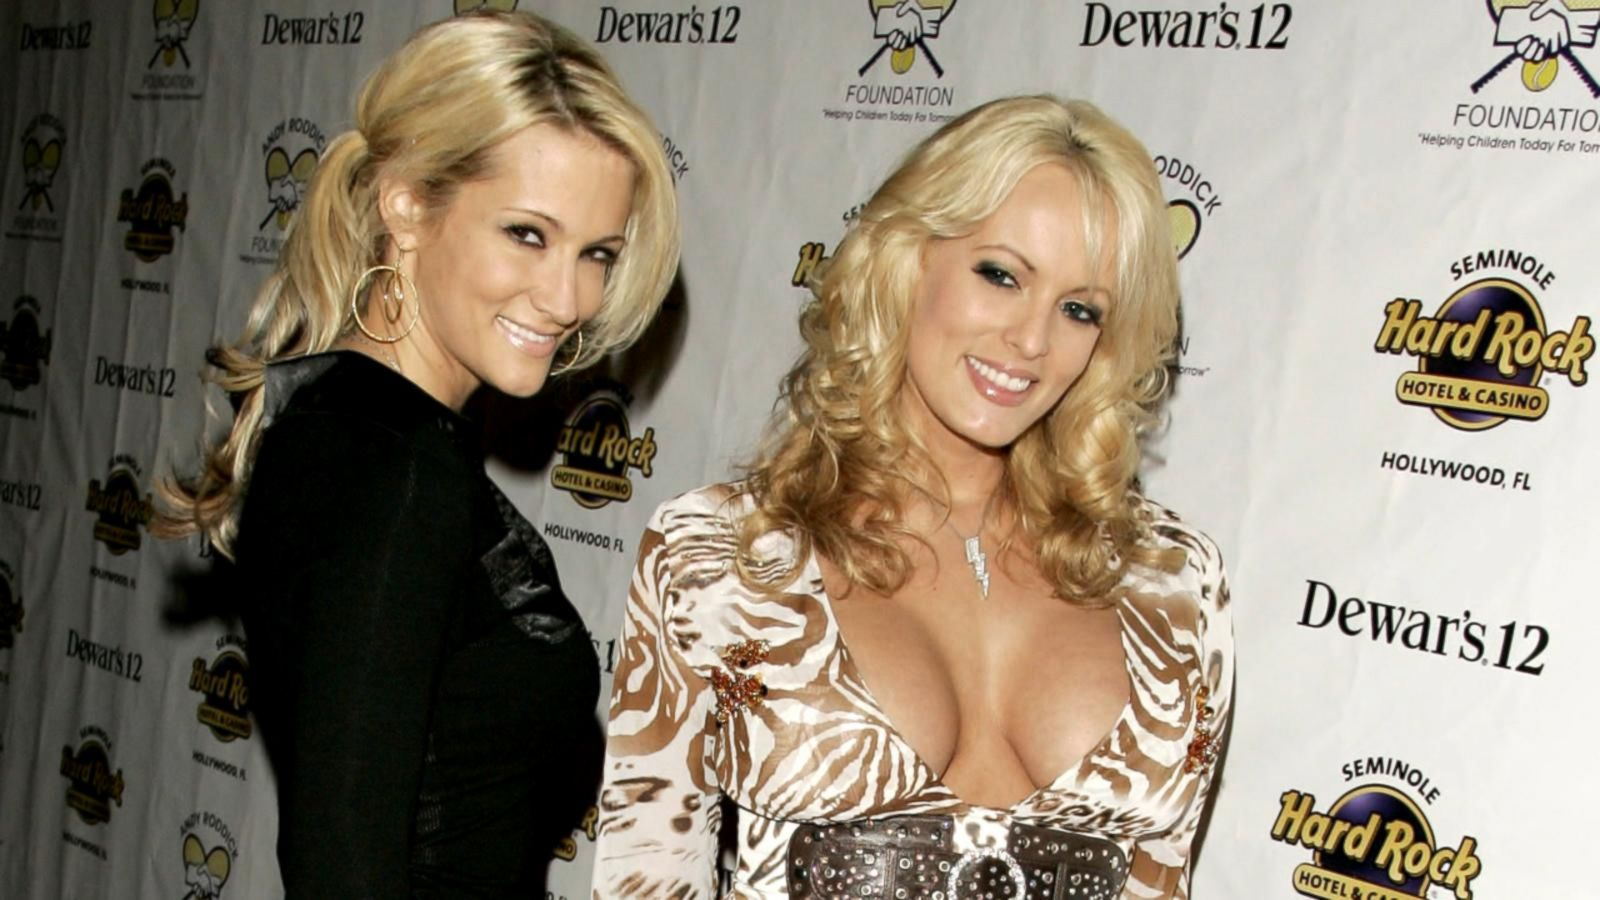 daniels and Jessica drake stormy